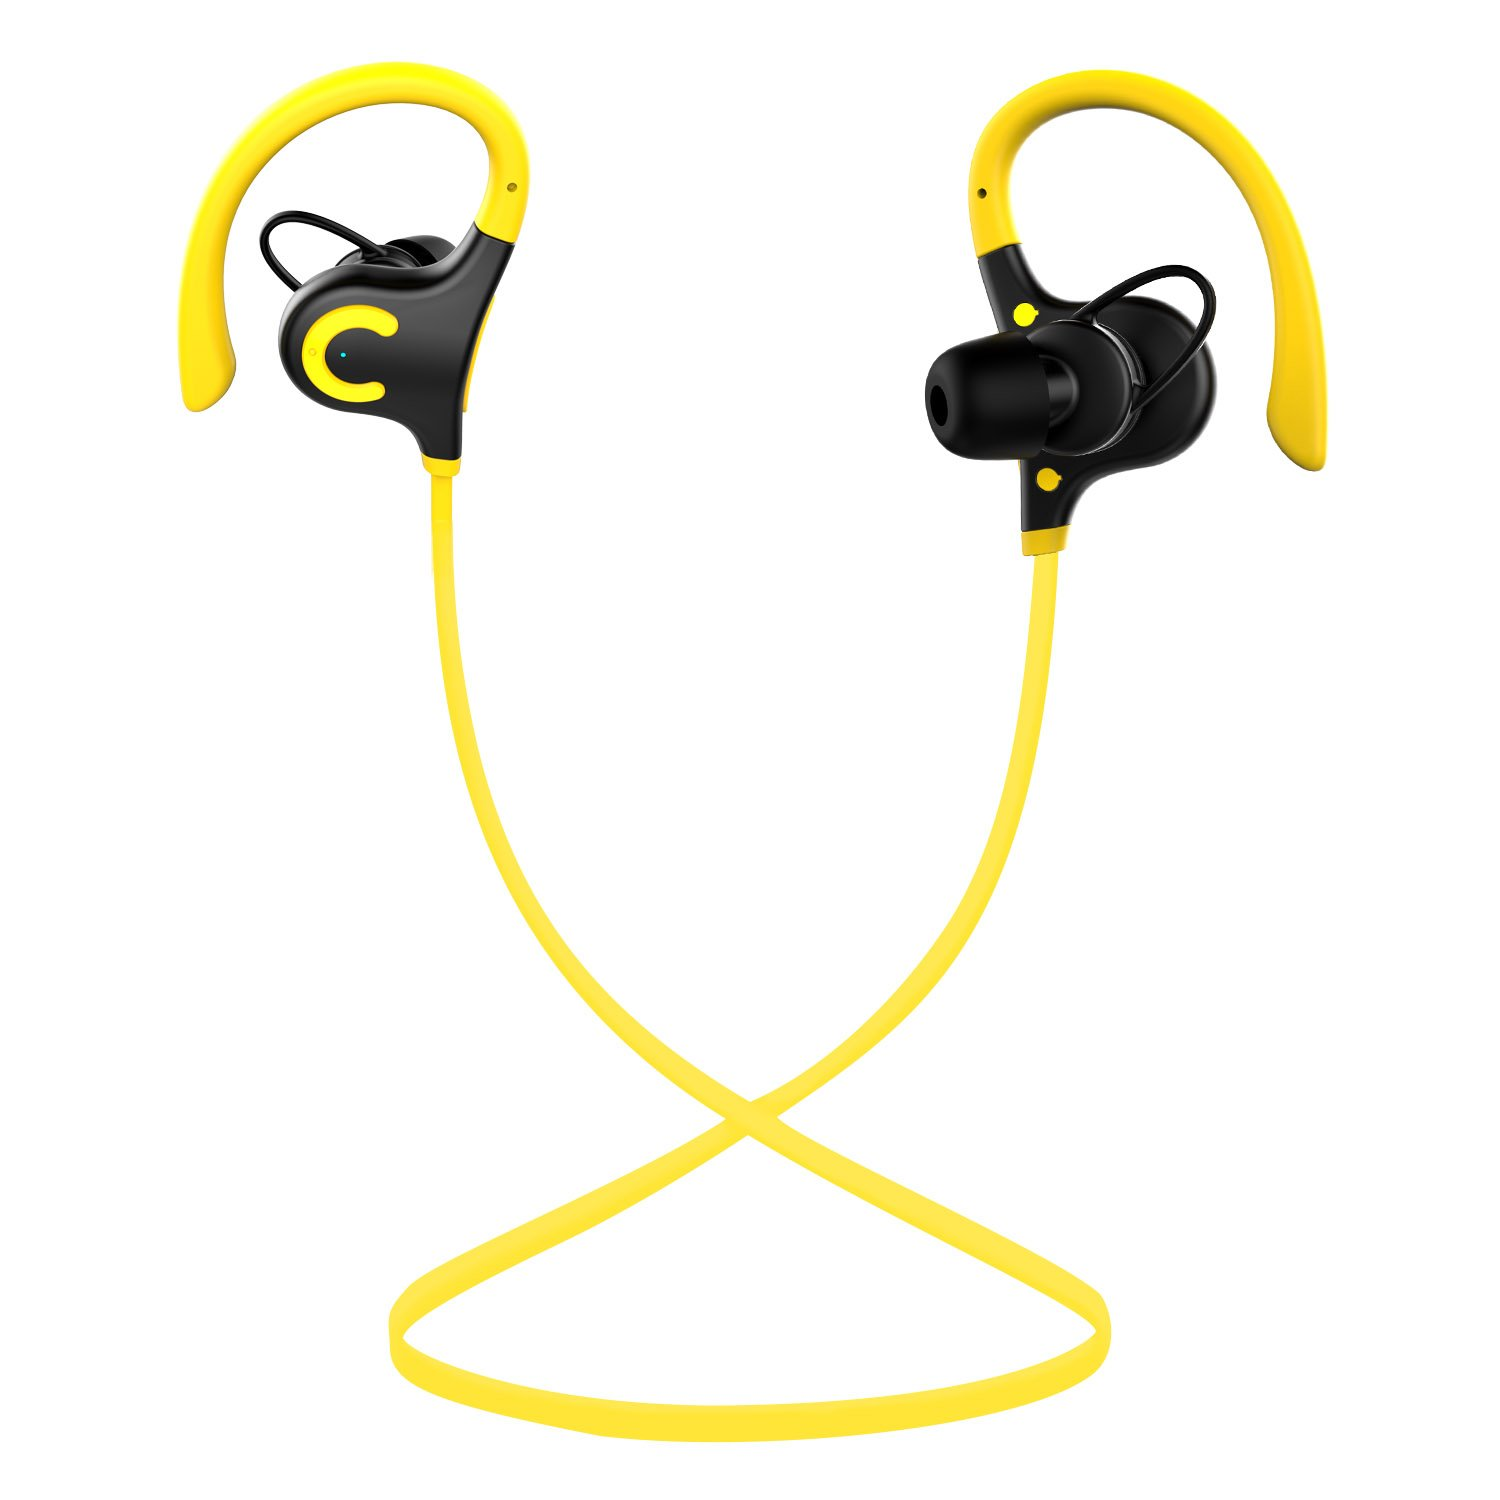 AN S/2 Wireless Earbuds Bluetooth Headphone Sport in-Ear IPX 4 Sweatproof Earphones with Mic (Super Sound Quality Bluetooth 4.1,3-10 Hours Play Time) Yellow/Black